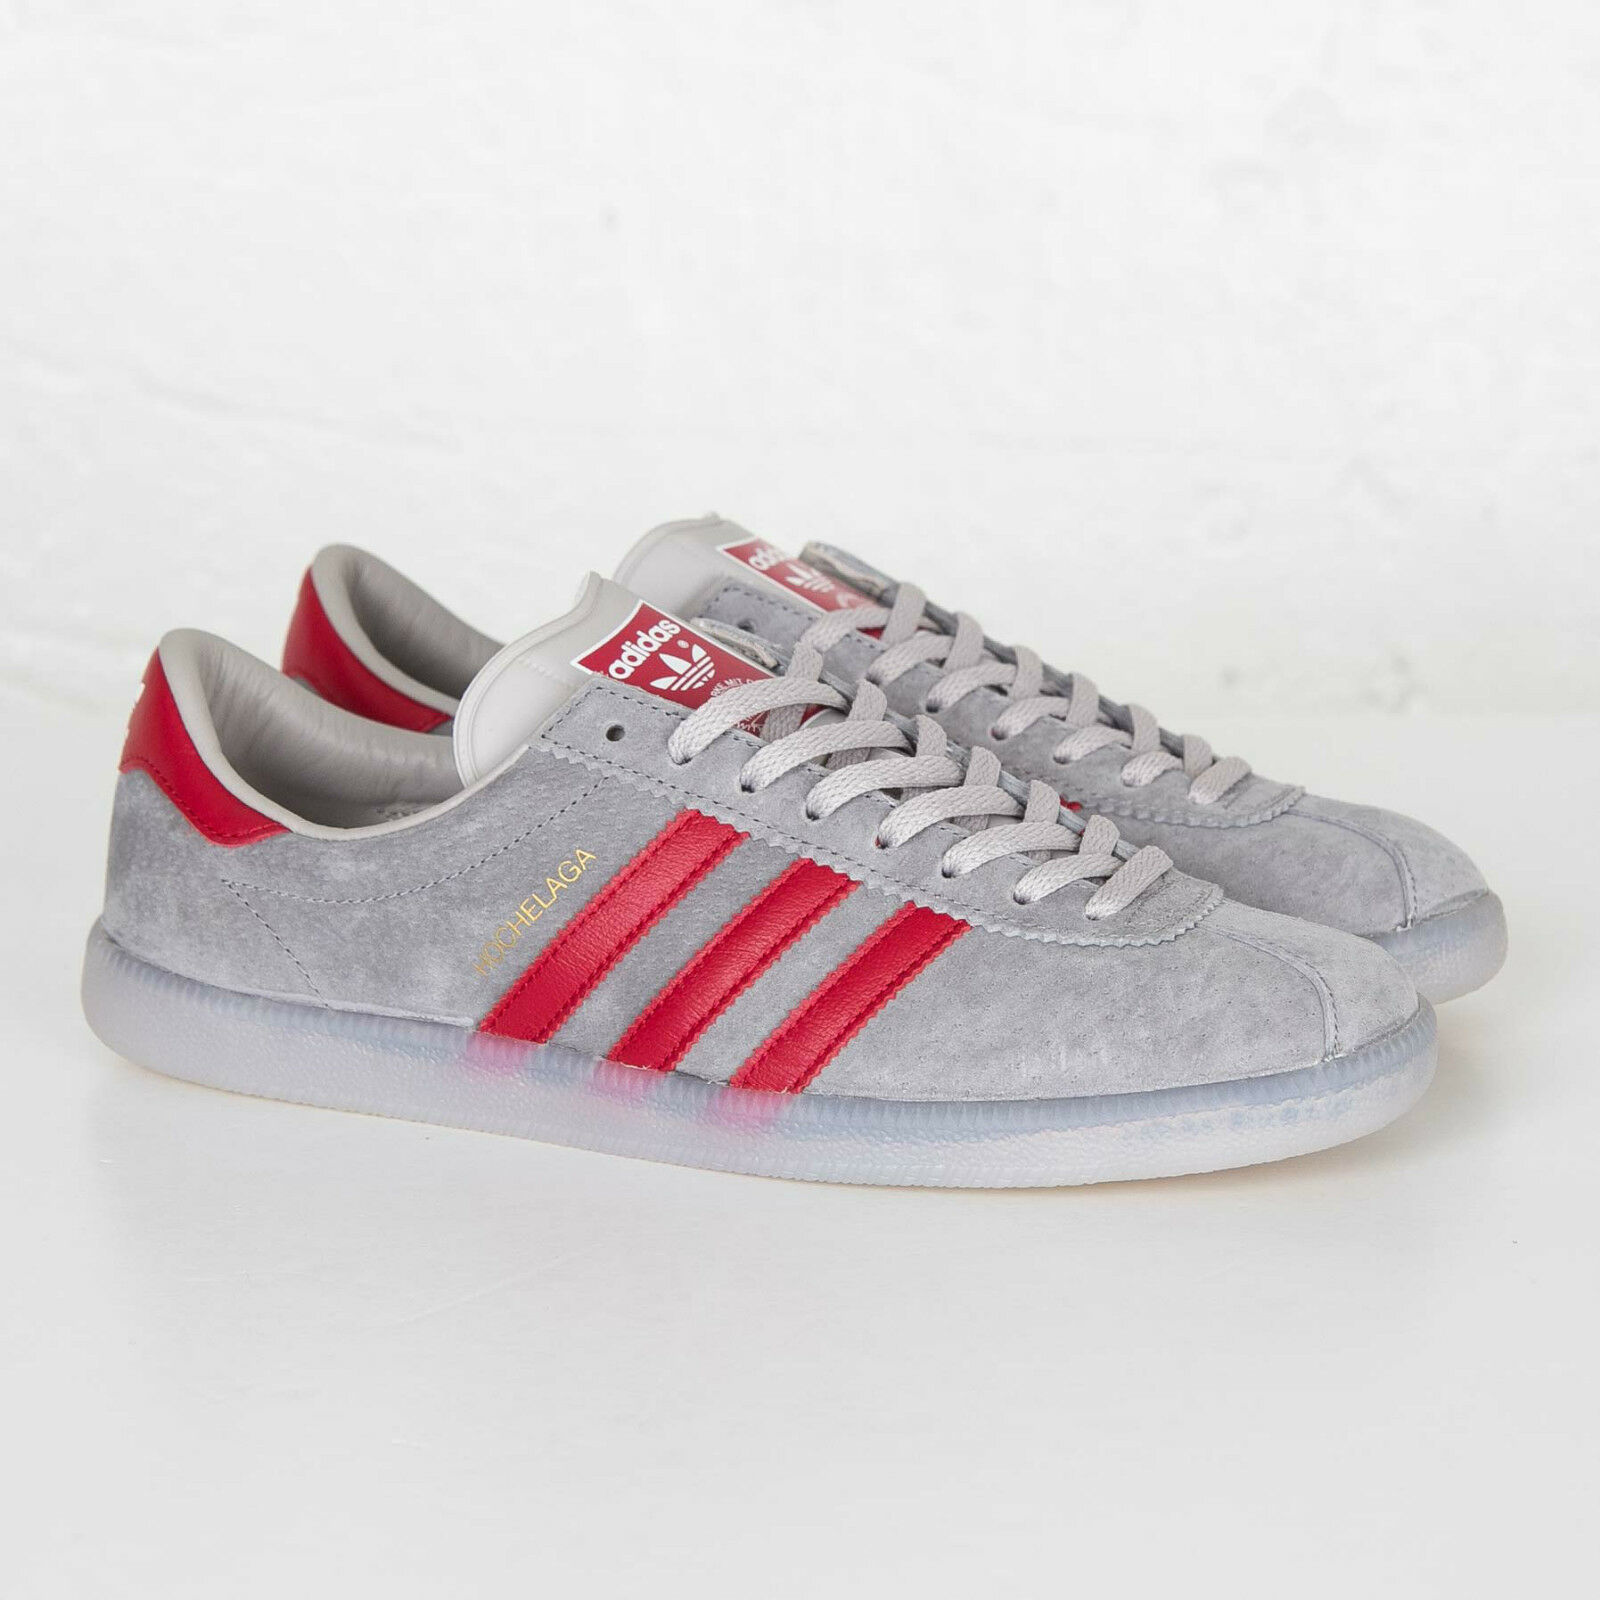 Adidas Originals x S74864 Spezial Hochelaga Light Onix S74864 x (All Size) SPZL Vintage 8262e5